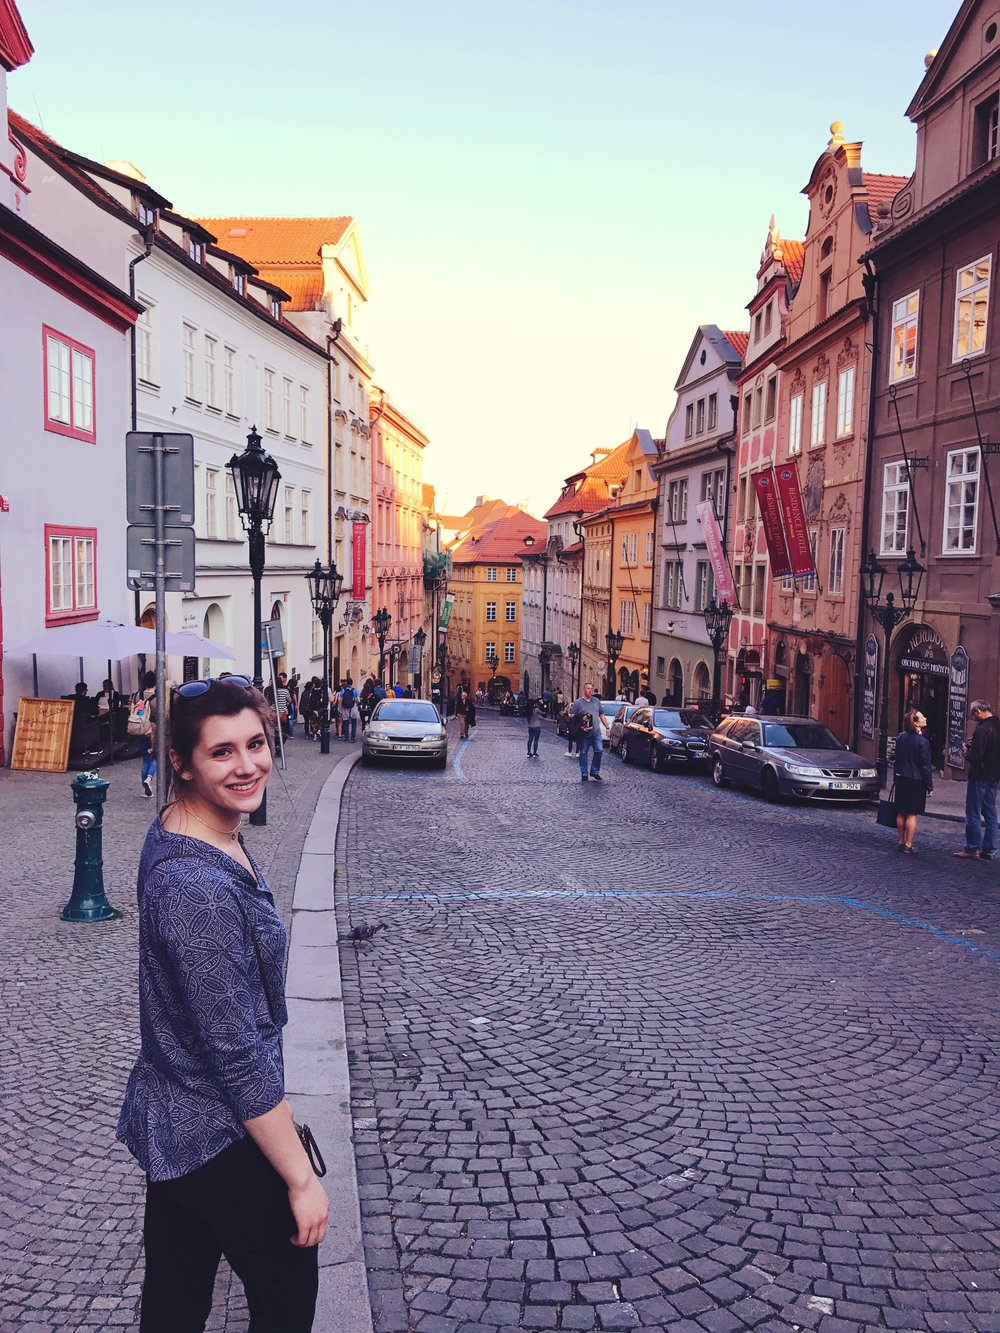 Bri looking beautiful as our team ventures through old-town on the way to dinner